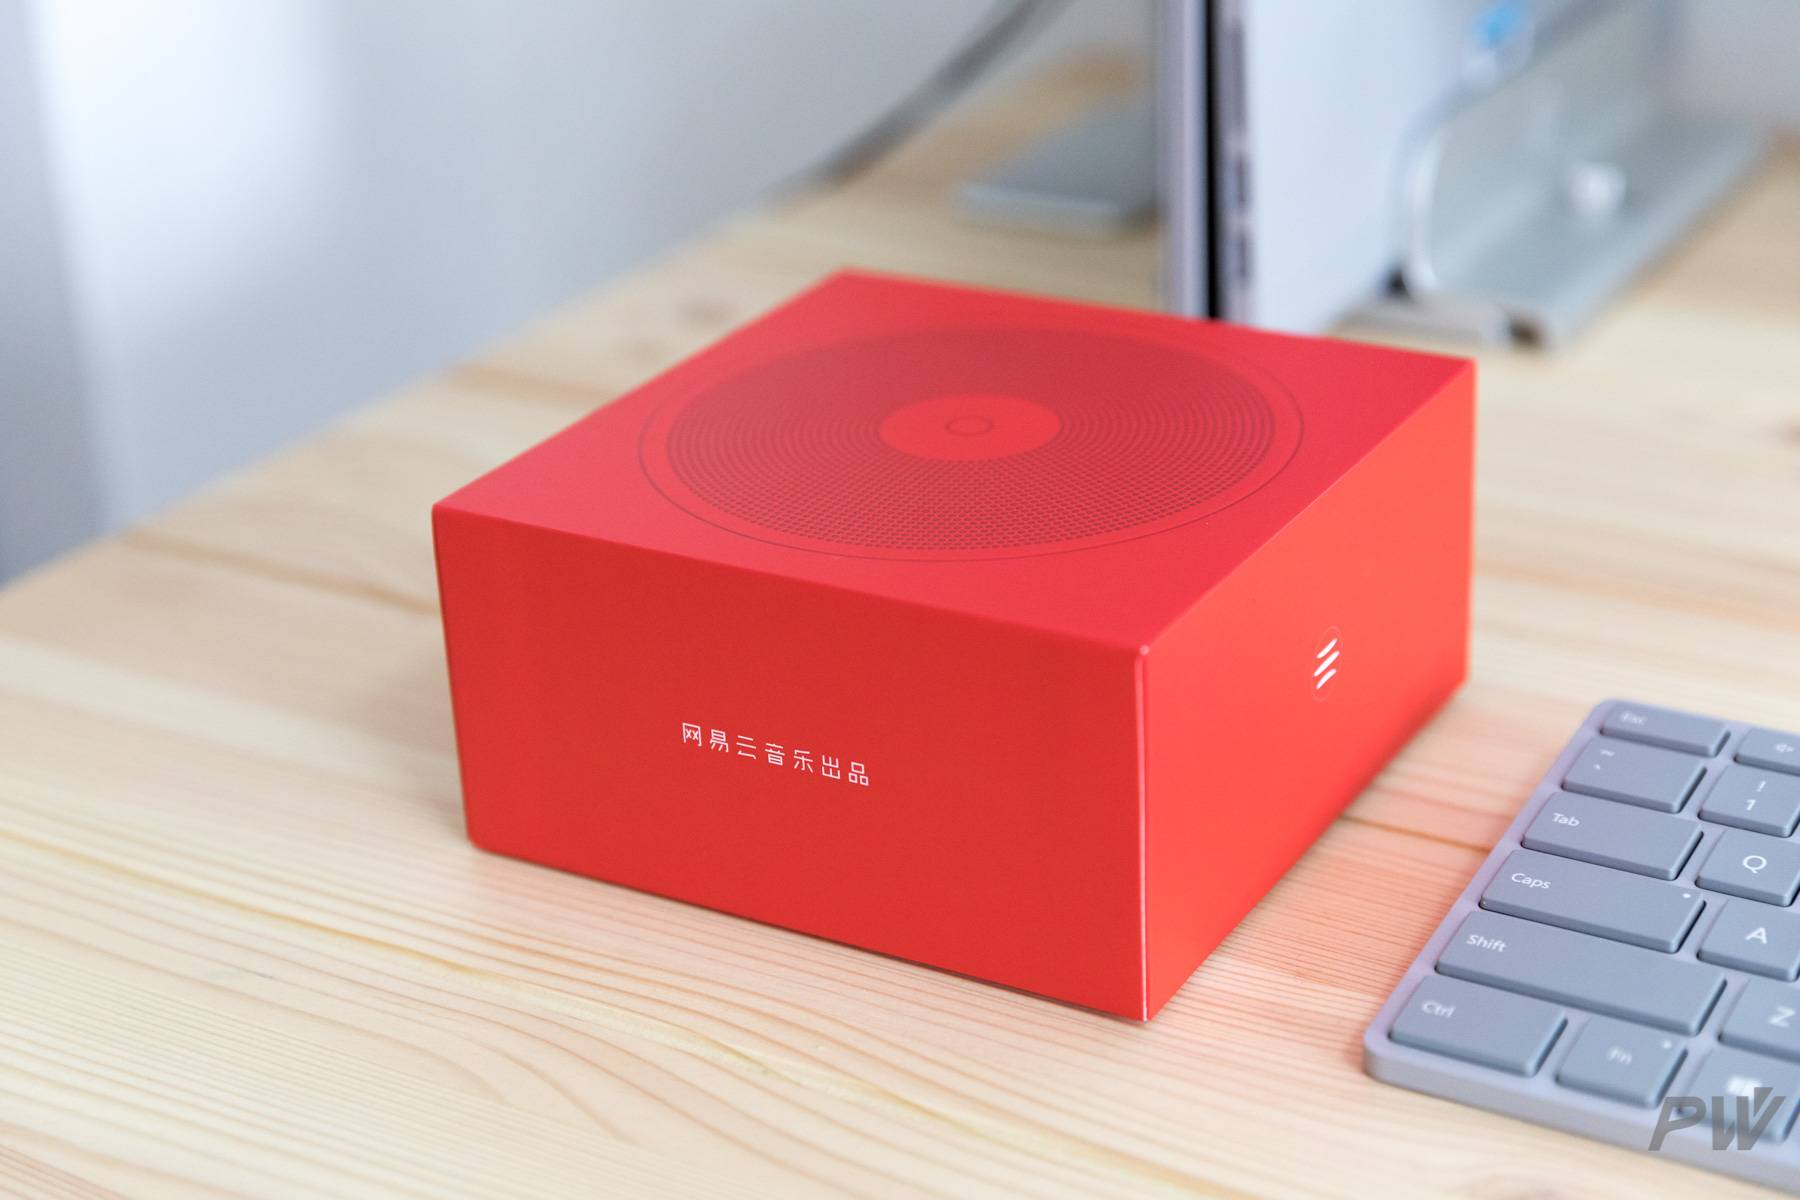 netease music bluetooth speaker Photo by Hao Ying-11